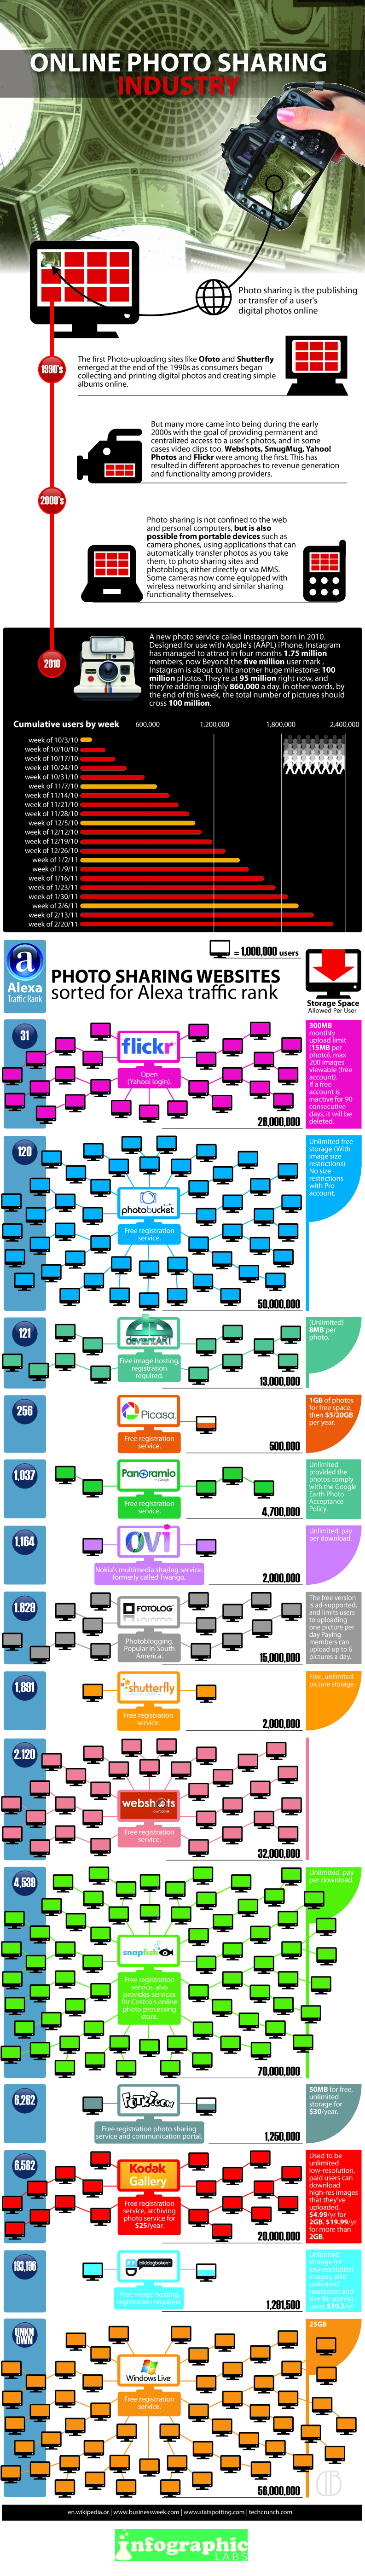 Online Photo Sharing: Comparing The Services [Infographic]